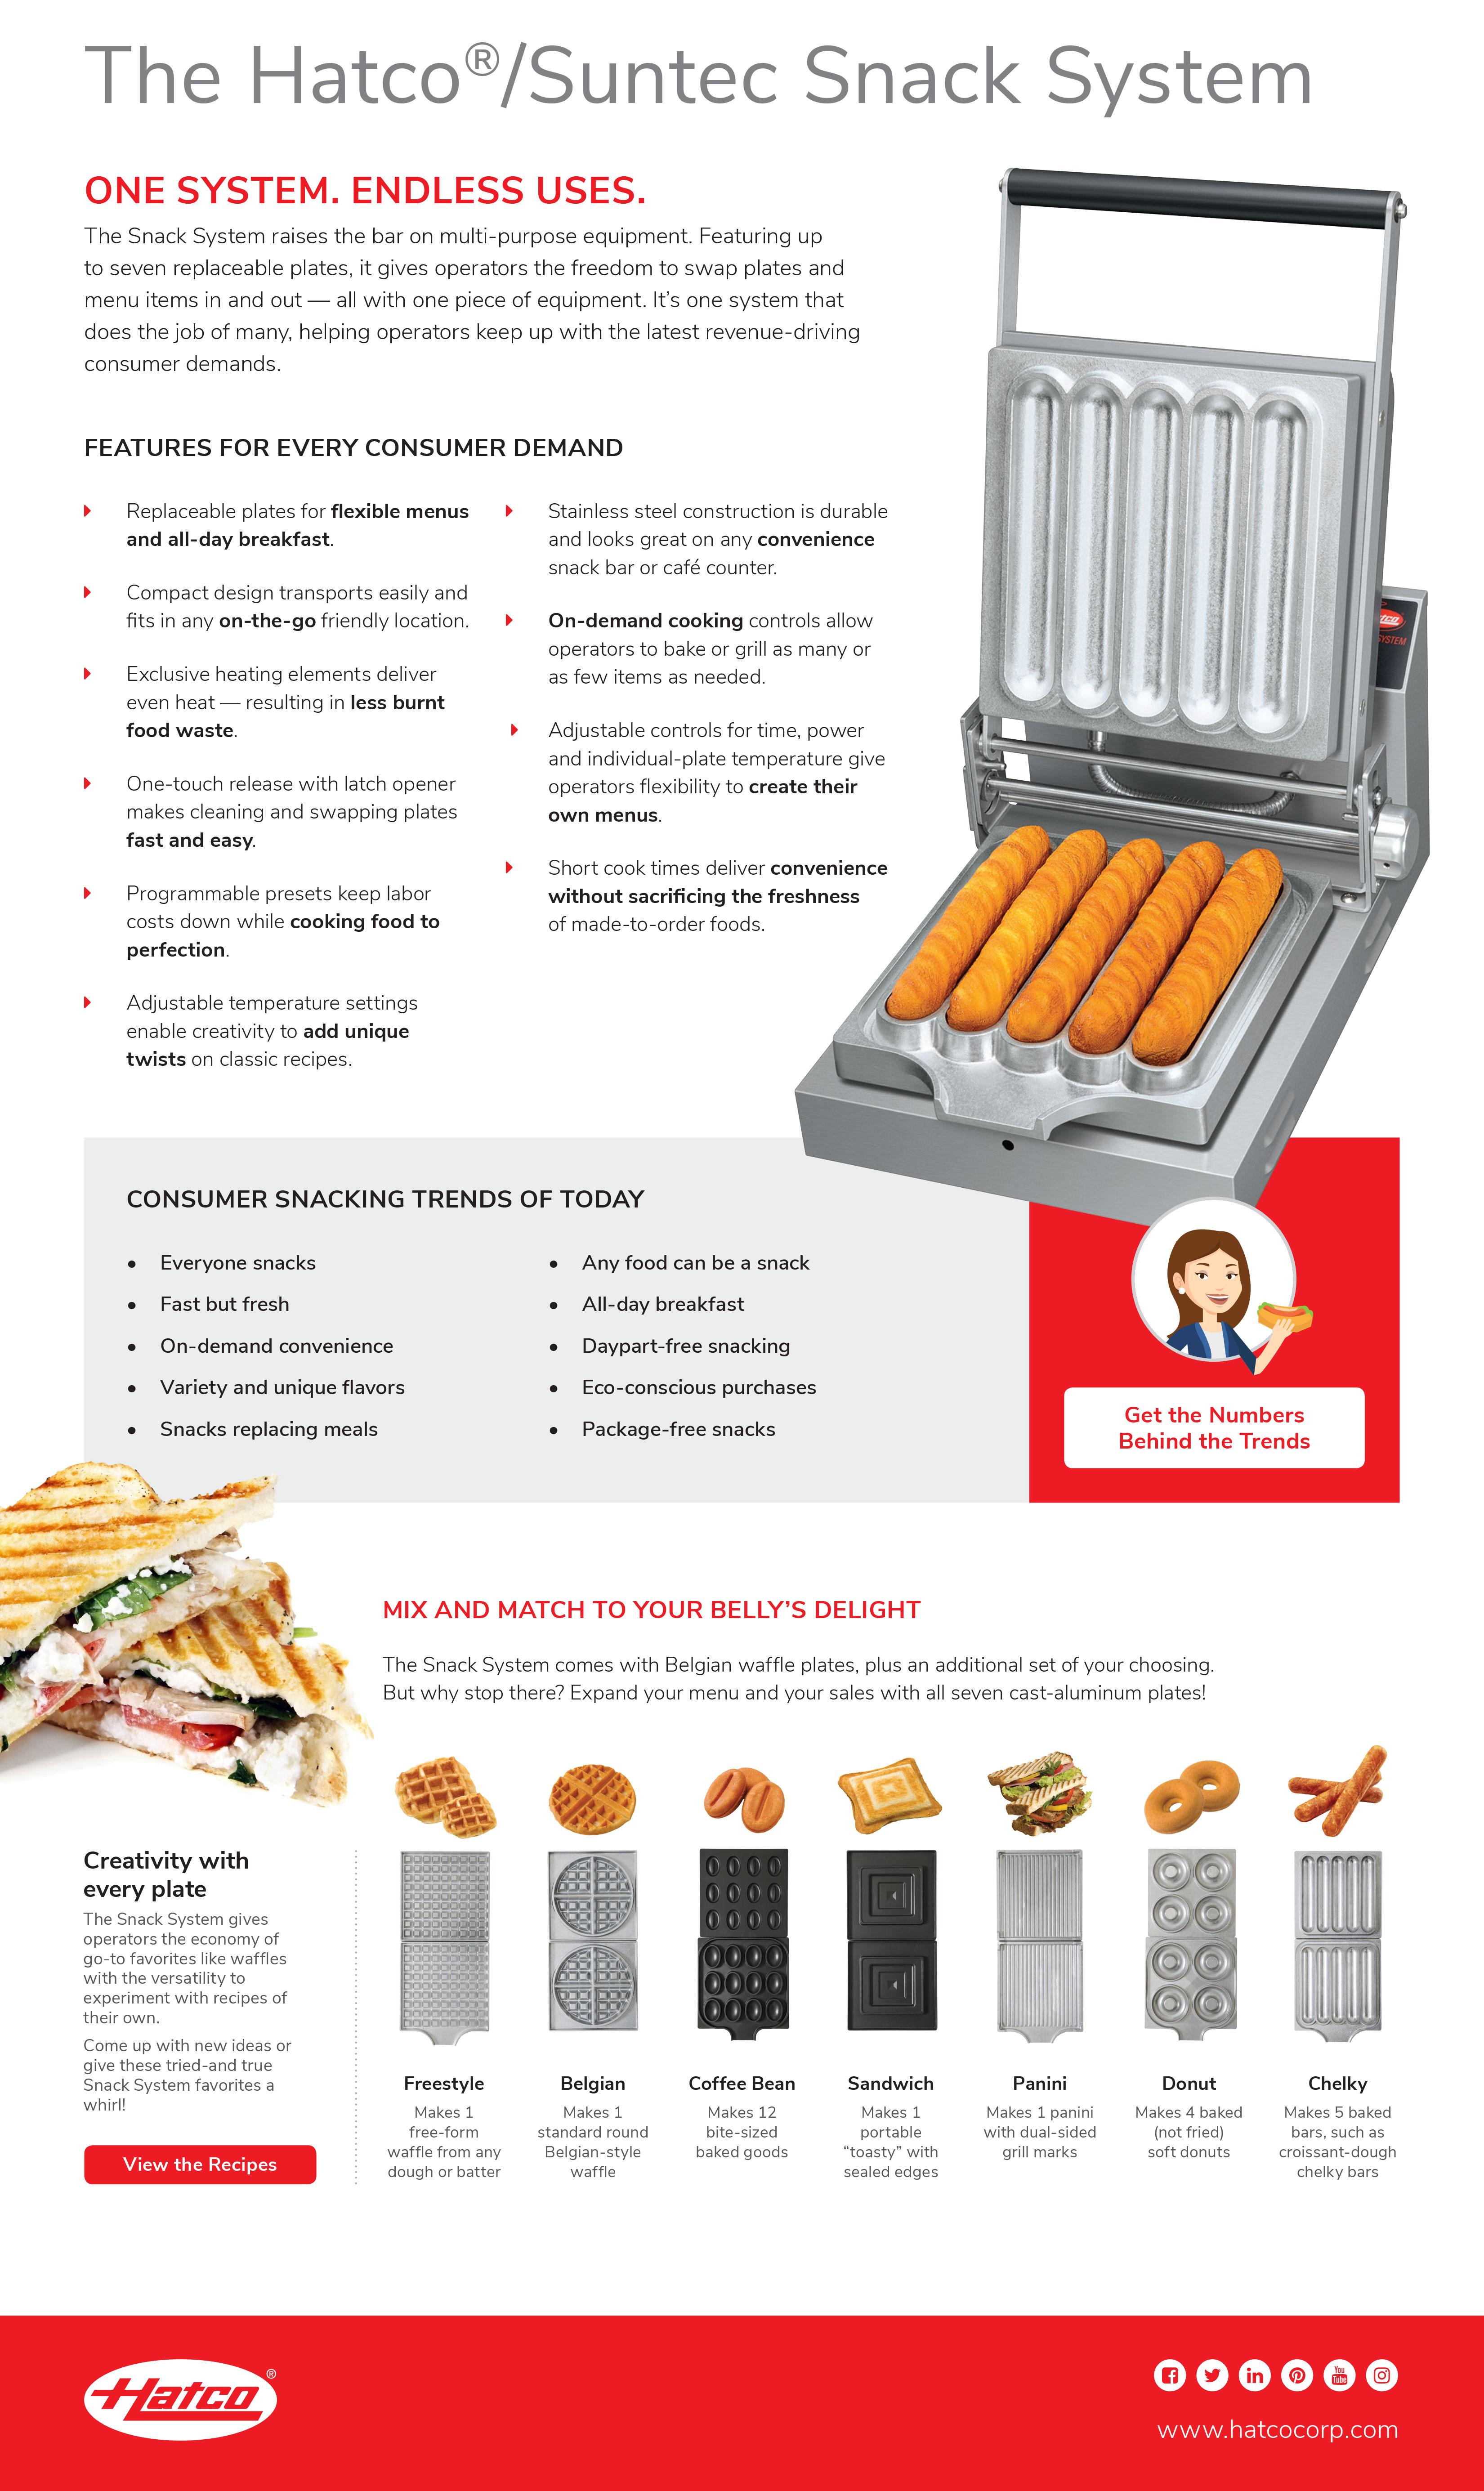 Hatco/Suntec Snack System Product Guide